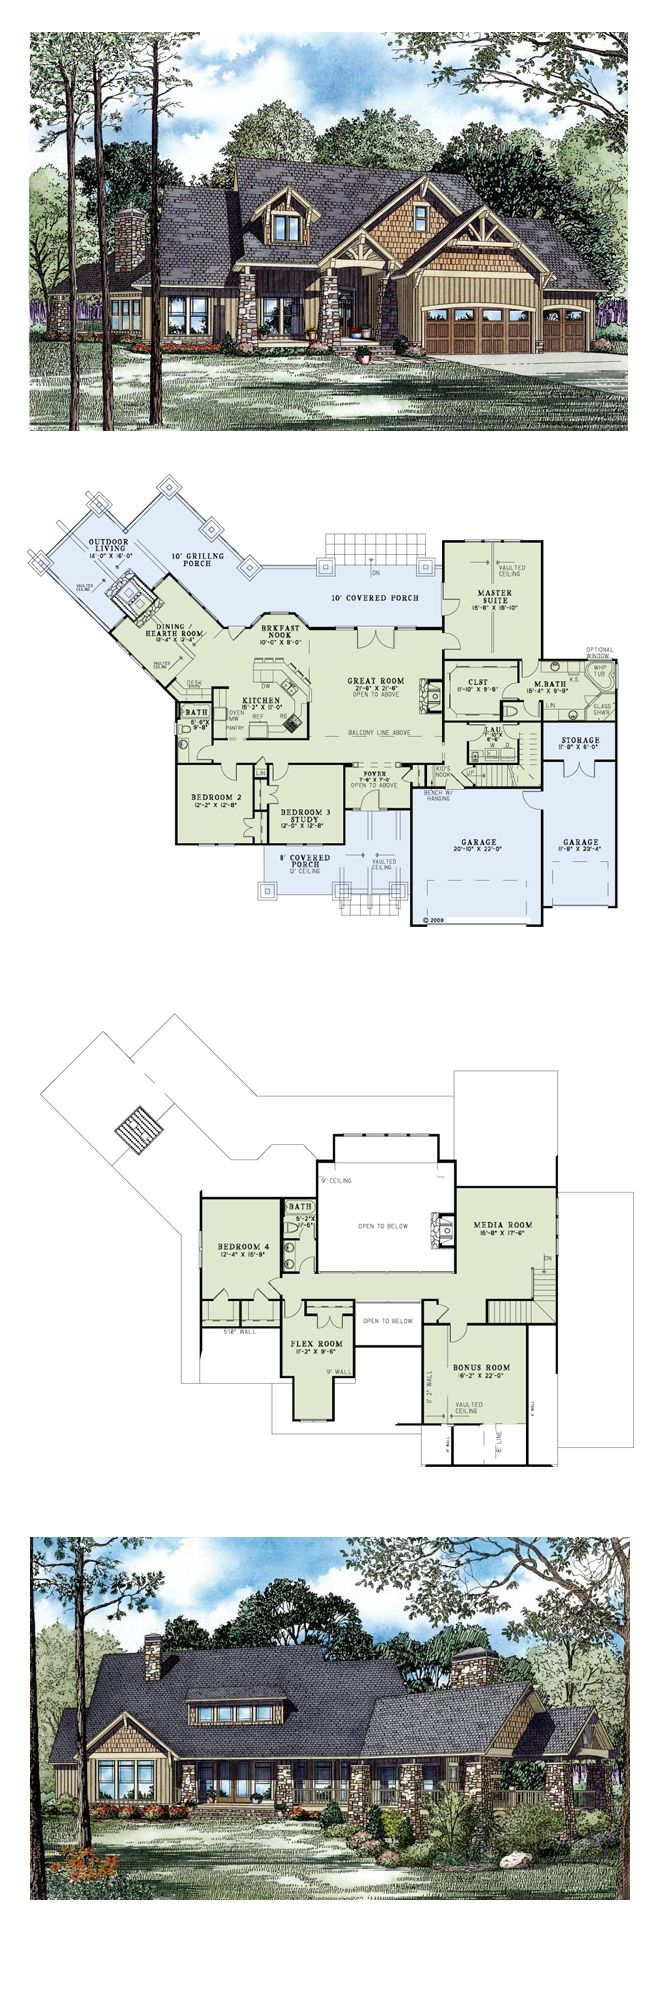 Luxury Craftsman House Plan 82260 | Total Living Area: 3345 sq. ft., 4 bedrooms & 3 bathrooms. This rustic home features timber work in the gables, siding, shake cedar, and massive stone columns on the covered porches. #houseplan #luxuryhome